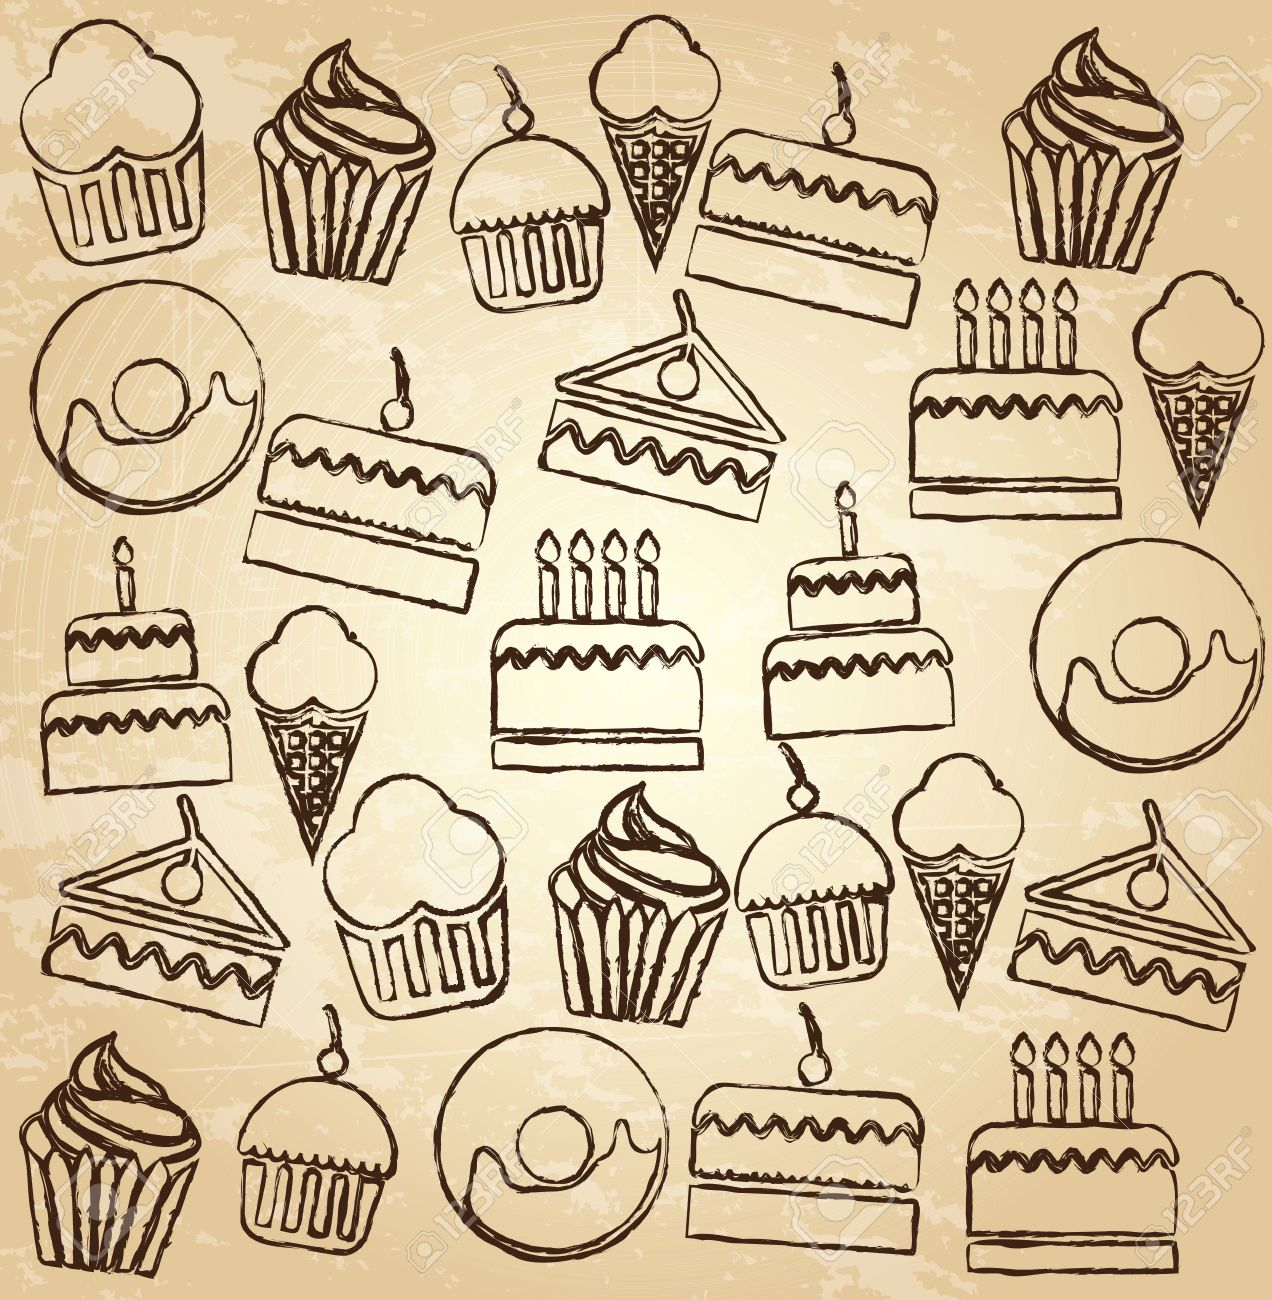 Desserts icons over brown background vector illustration Stock Vector - 19463700